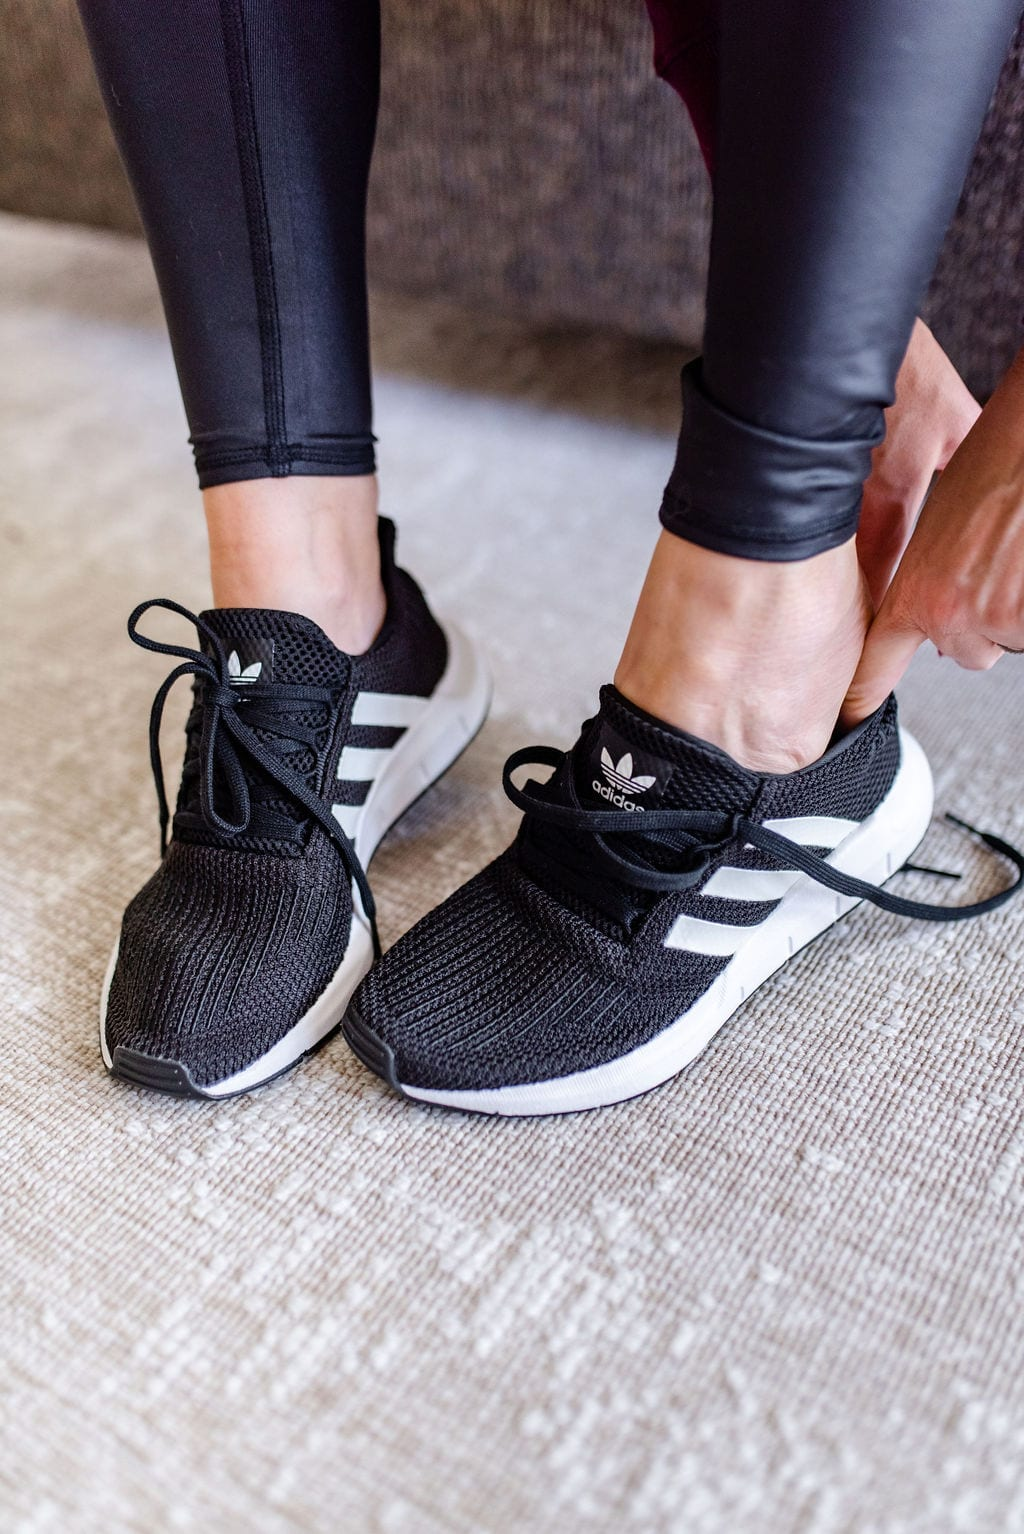 Adidas swift run sneaker womens.